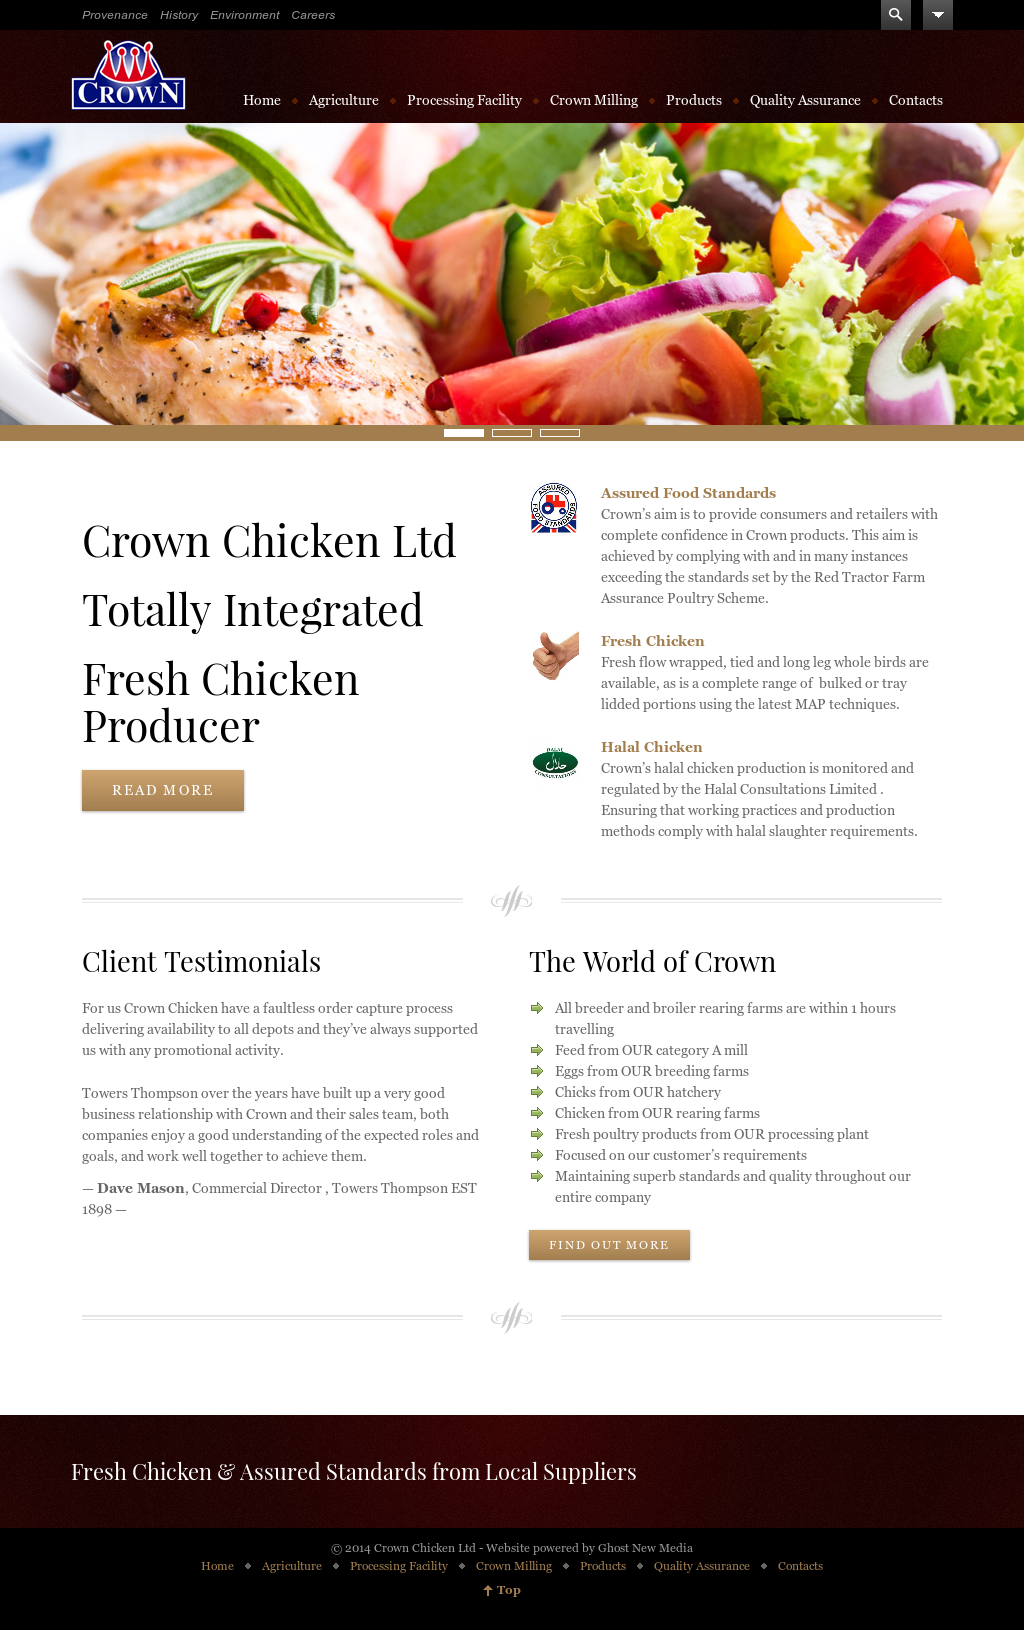 Crown Chicken Competitors, Revenue and Employees - Owler